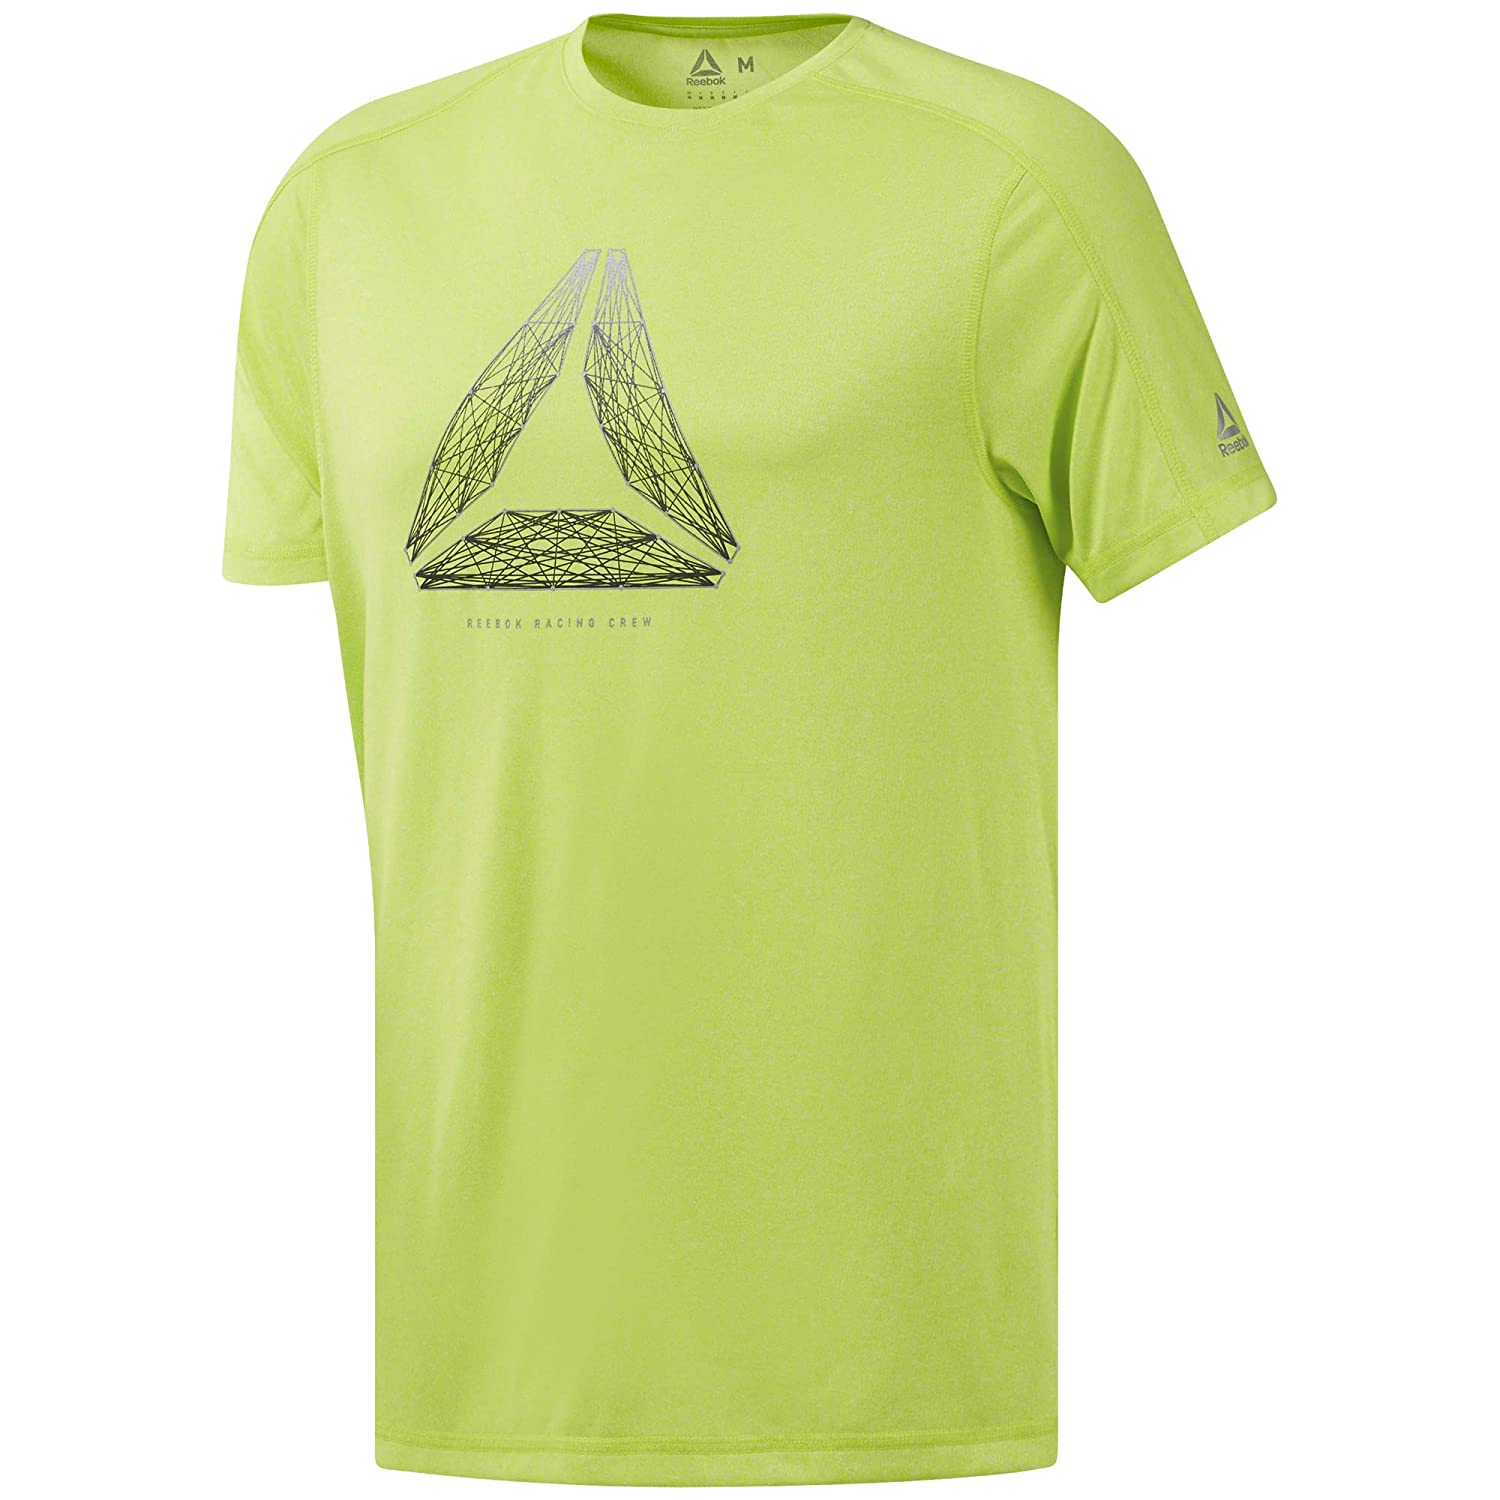 4b531d7b0a Reebok OSR Reflect Move tee Camiseta